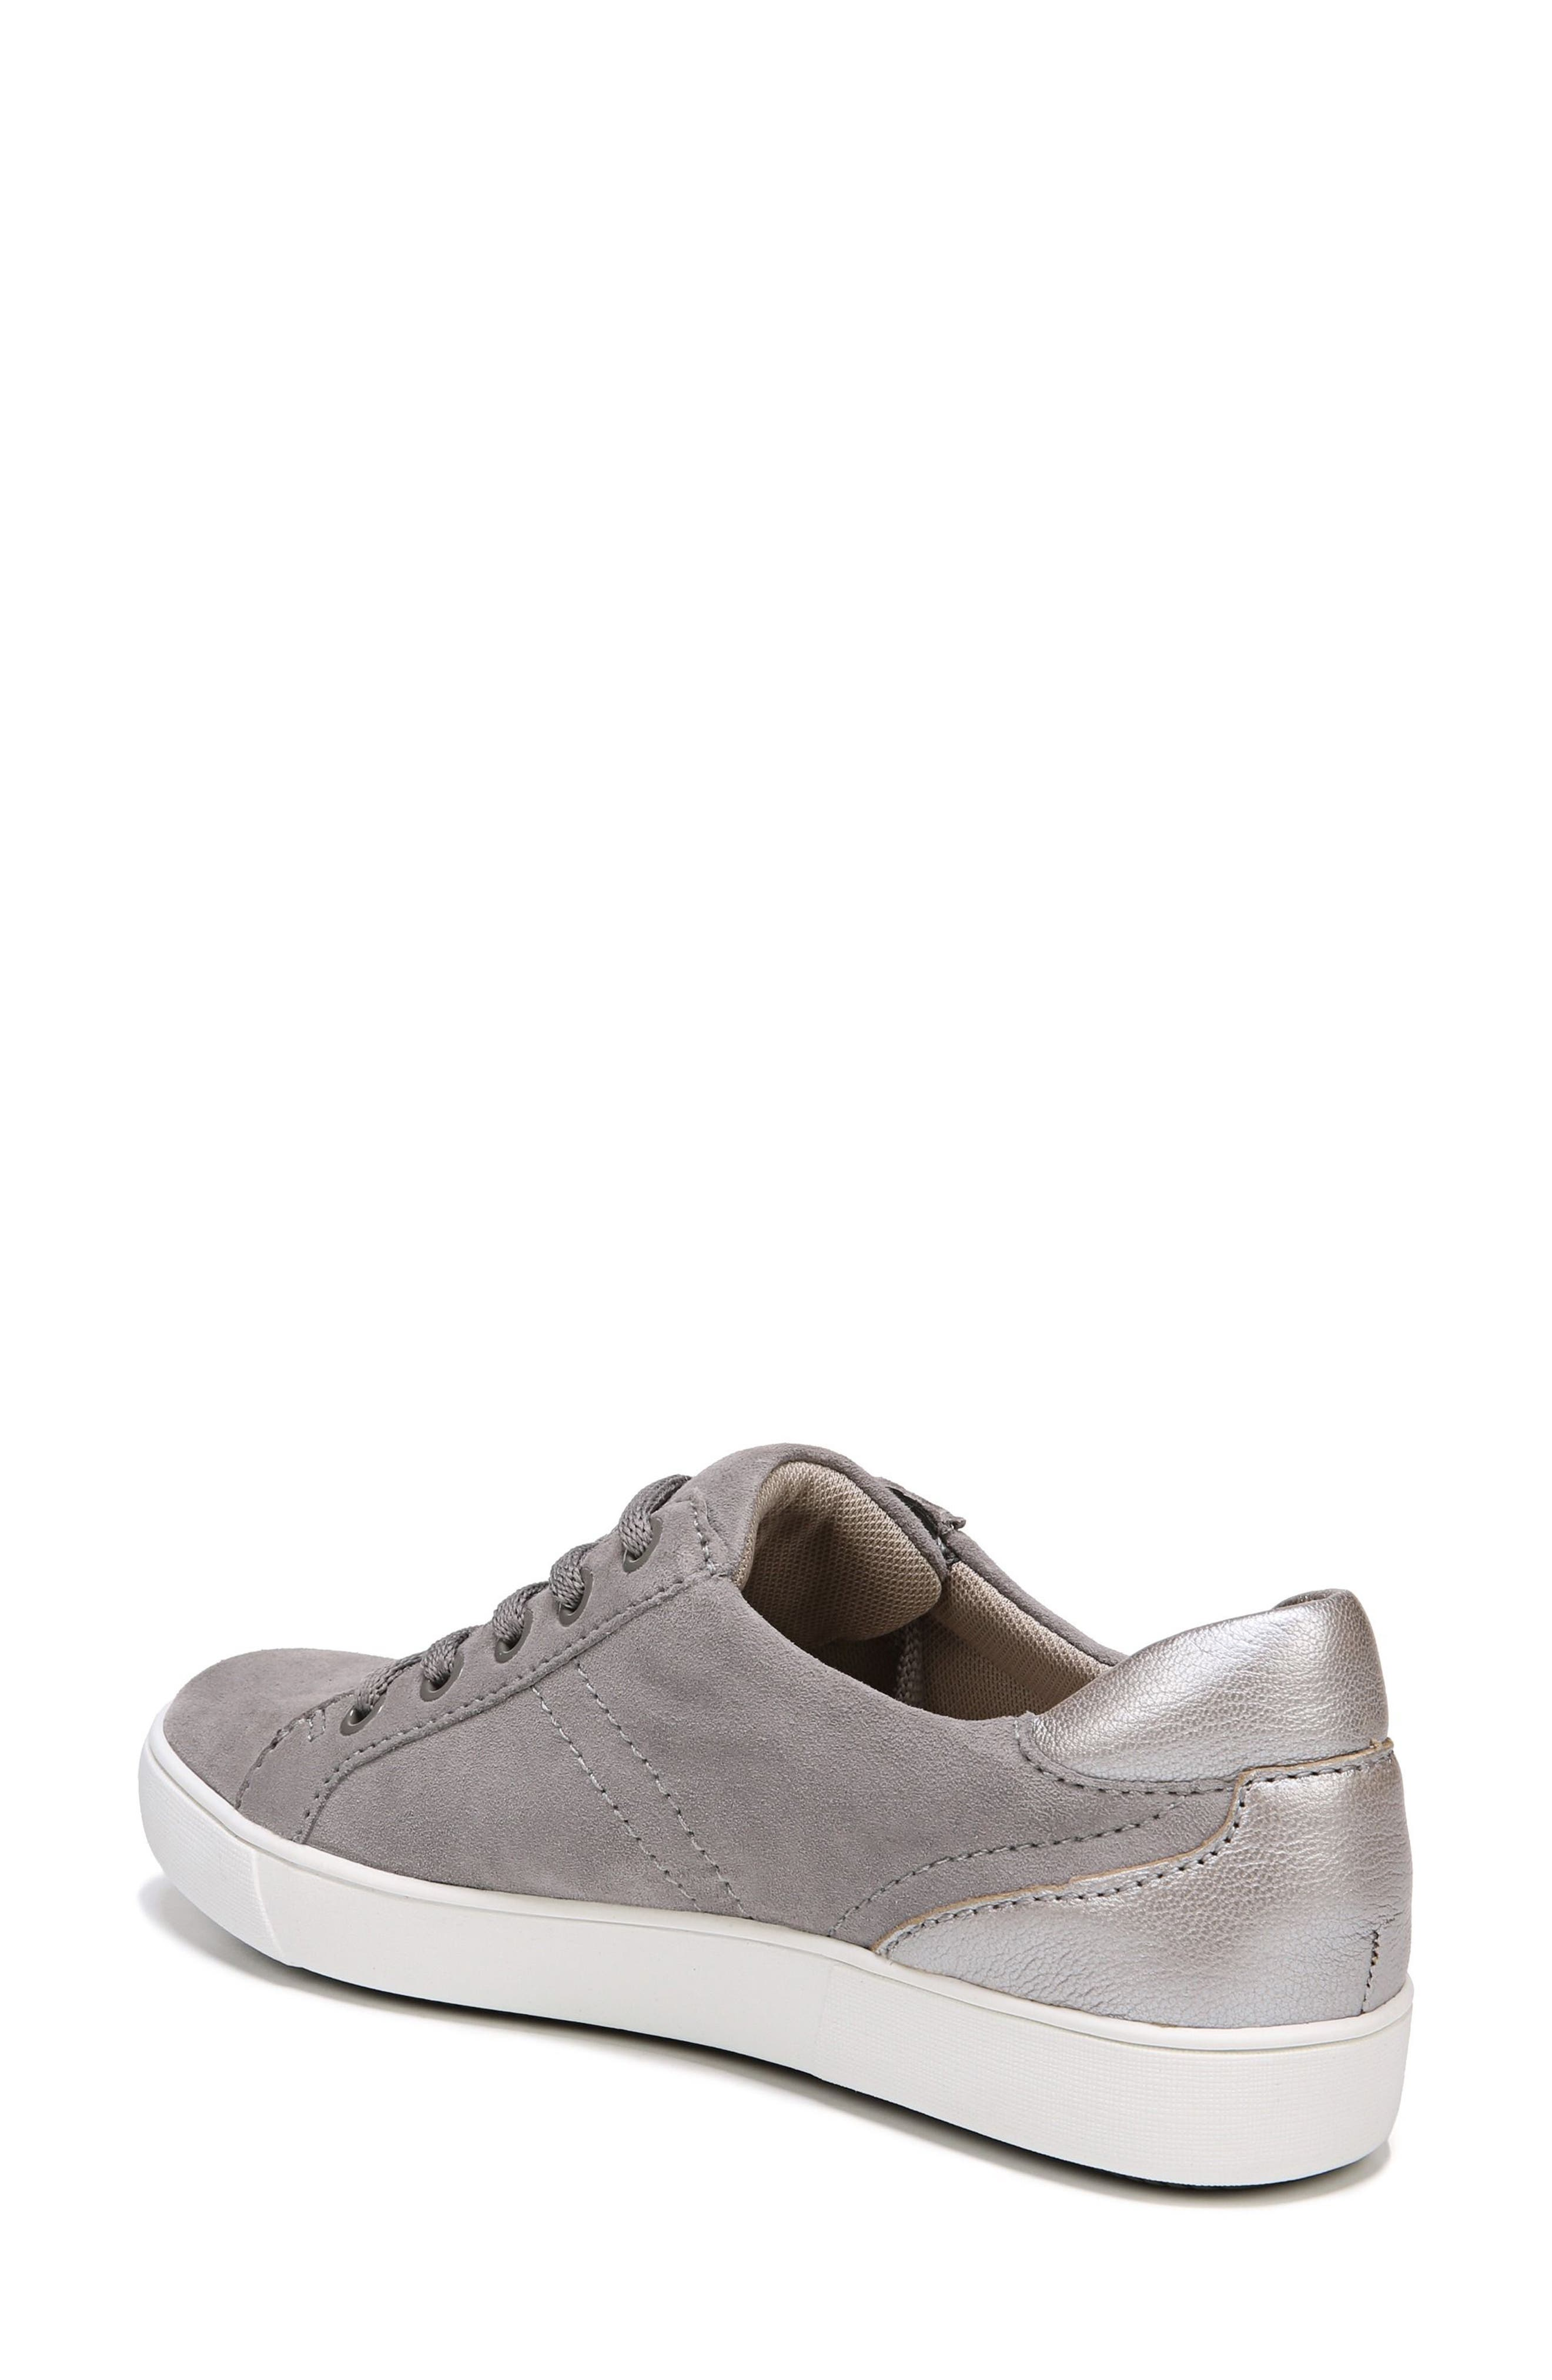 NATURALIZER,                             Morrison Sneaker,                             Alternate thumbnail 2, color,                             GREY SUEDE